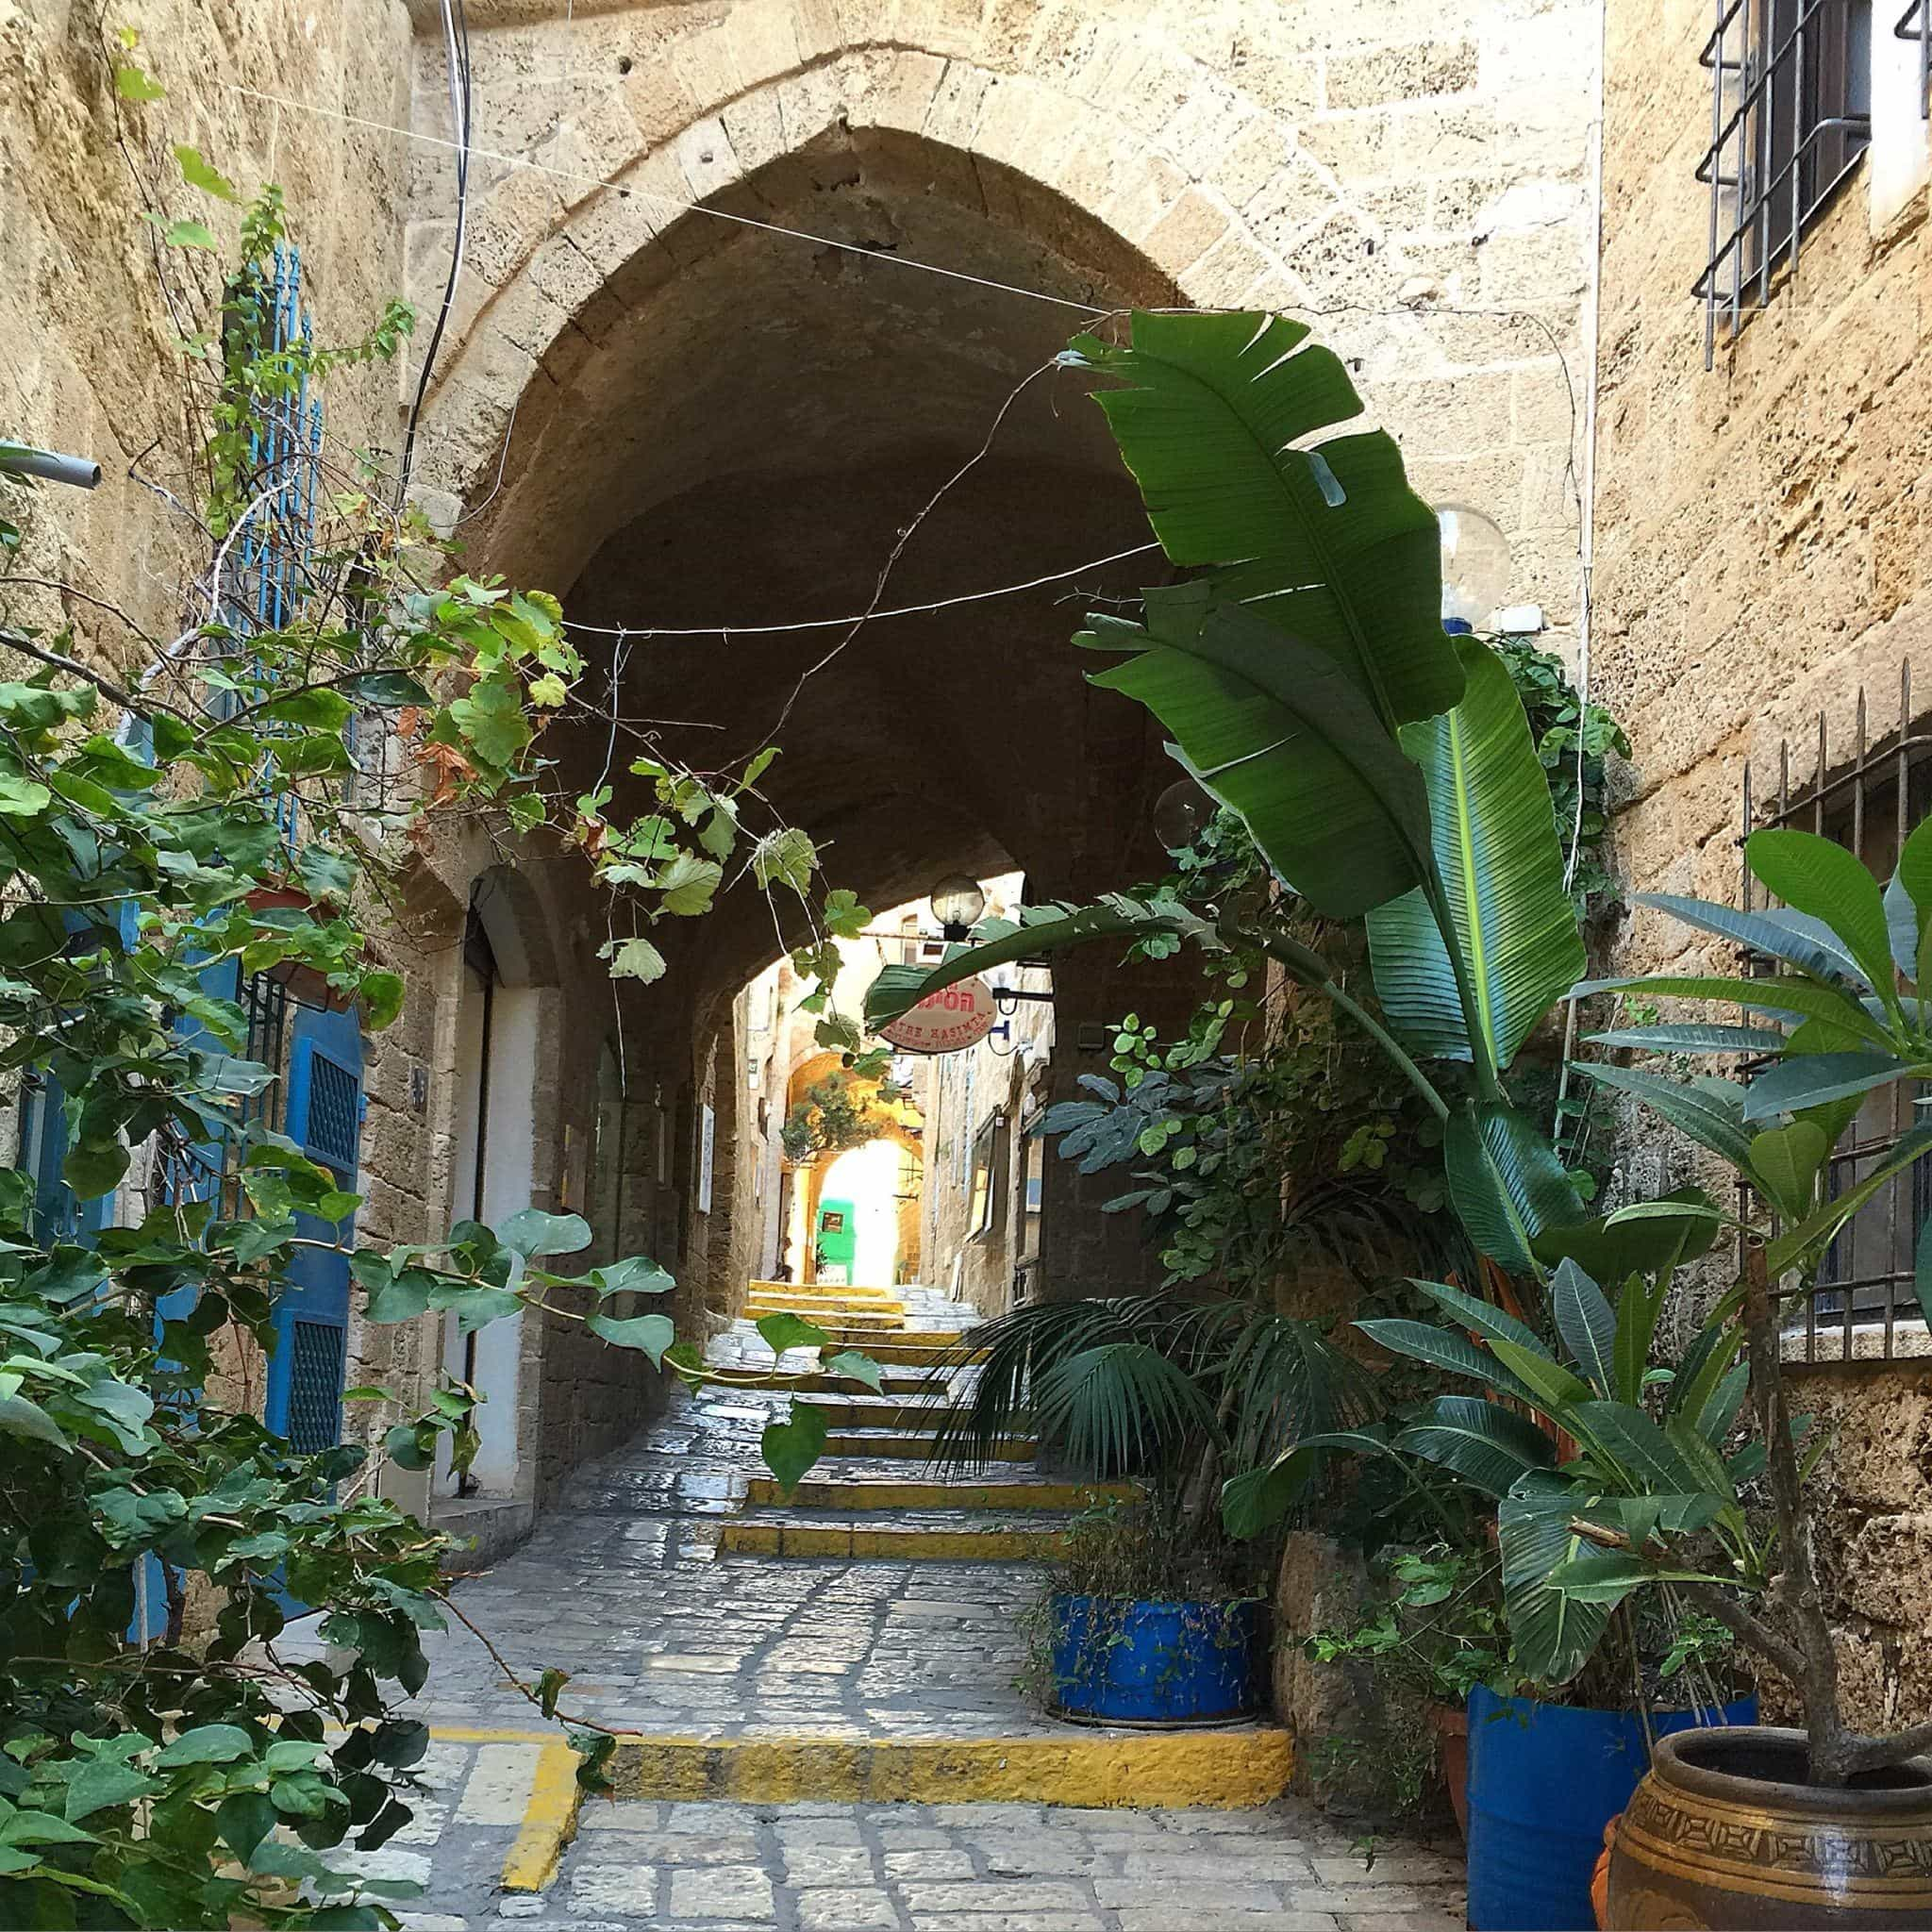 A scene from Jaffa - the ancient portion of Tel Aviv